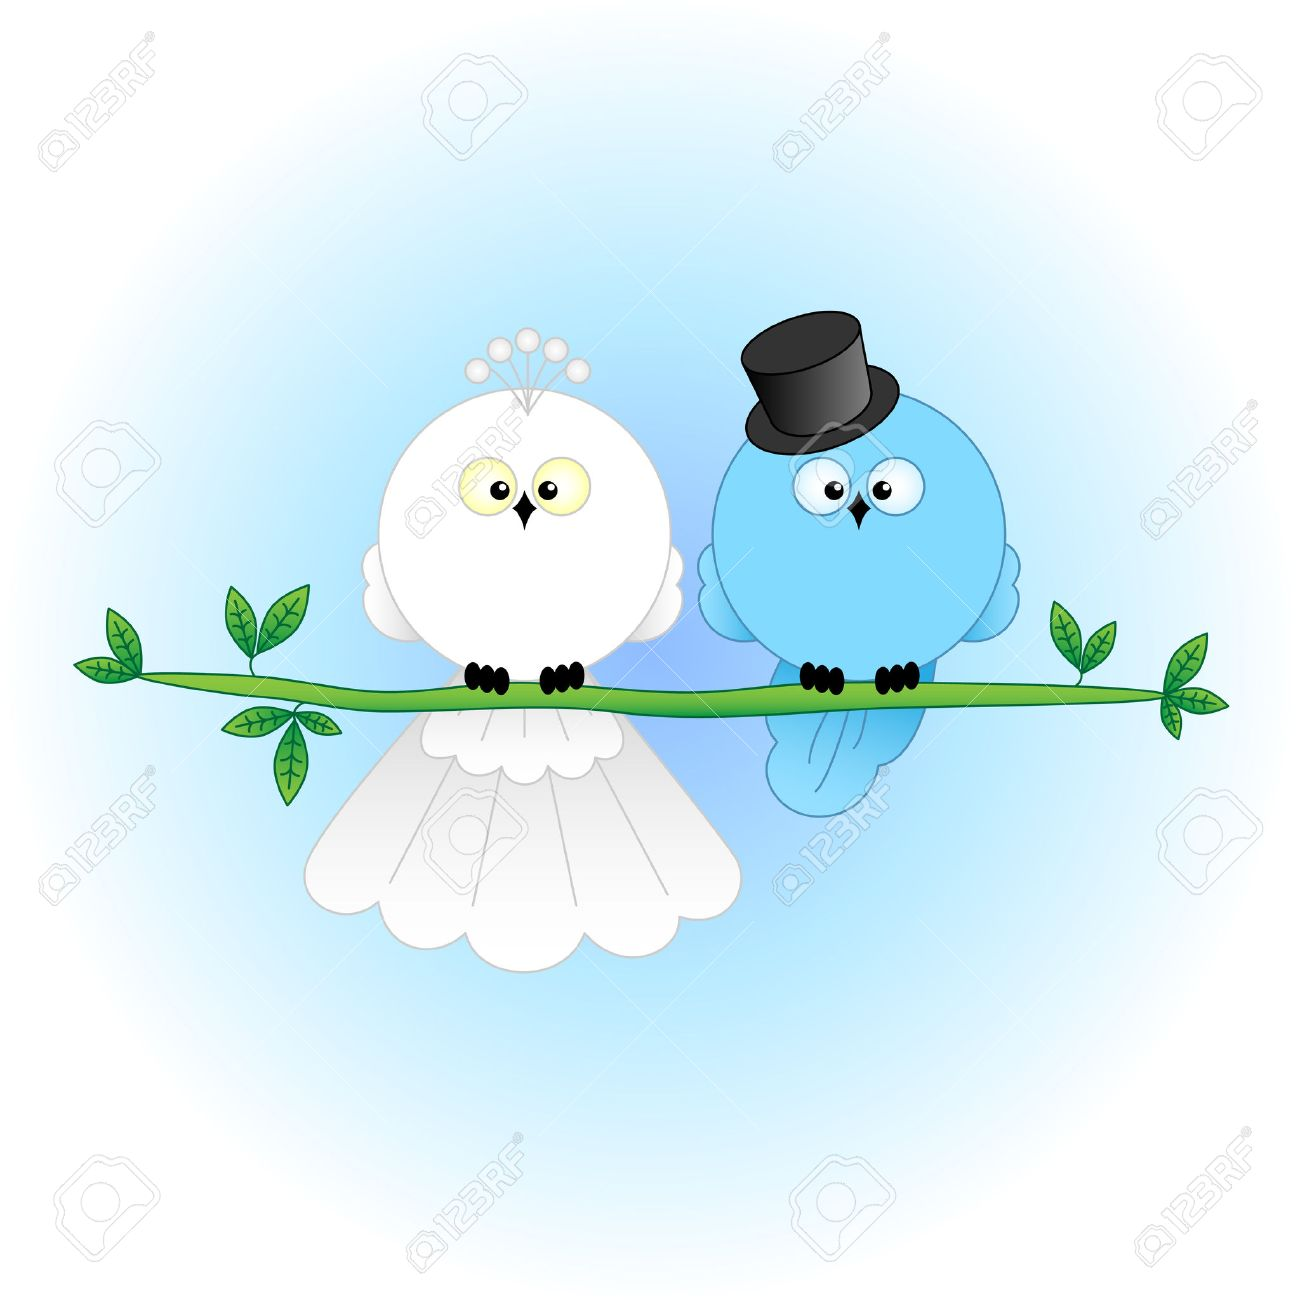 Stylish Bride And Groom Birds Cartoon Characters For Wedding Invitations Cards Etc Stock Vector